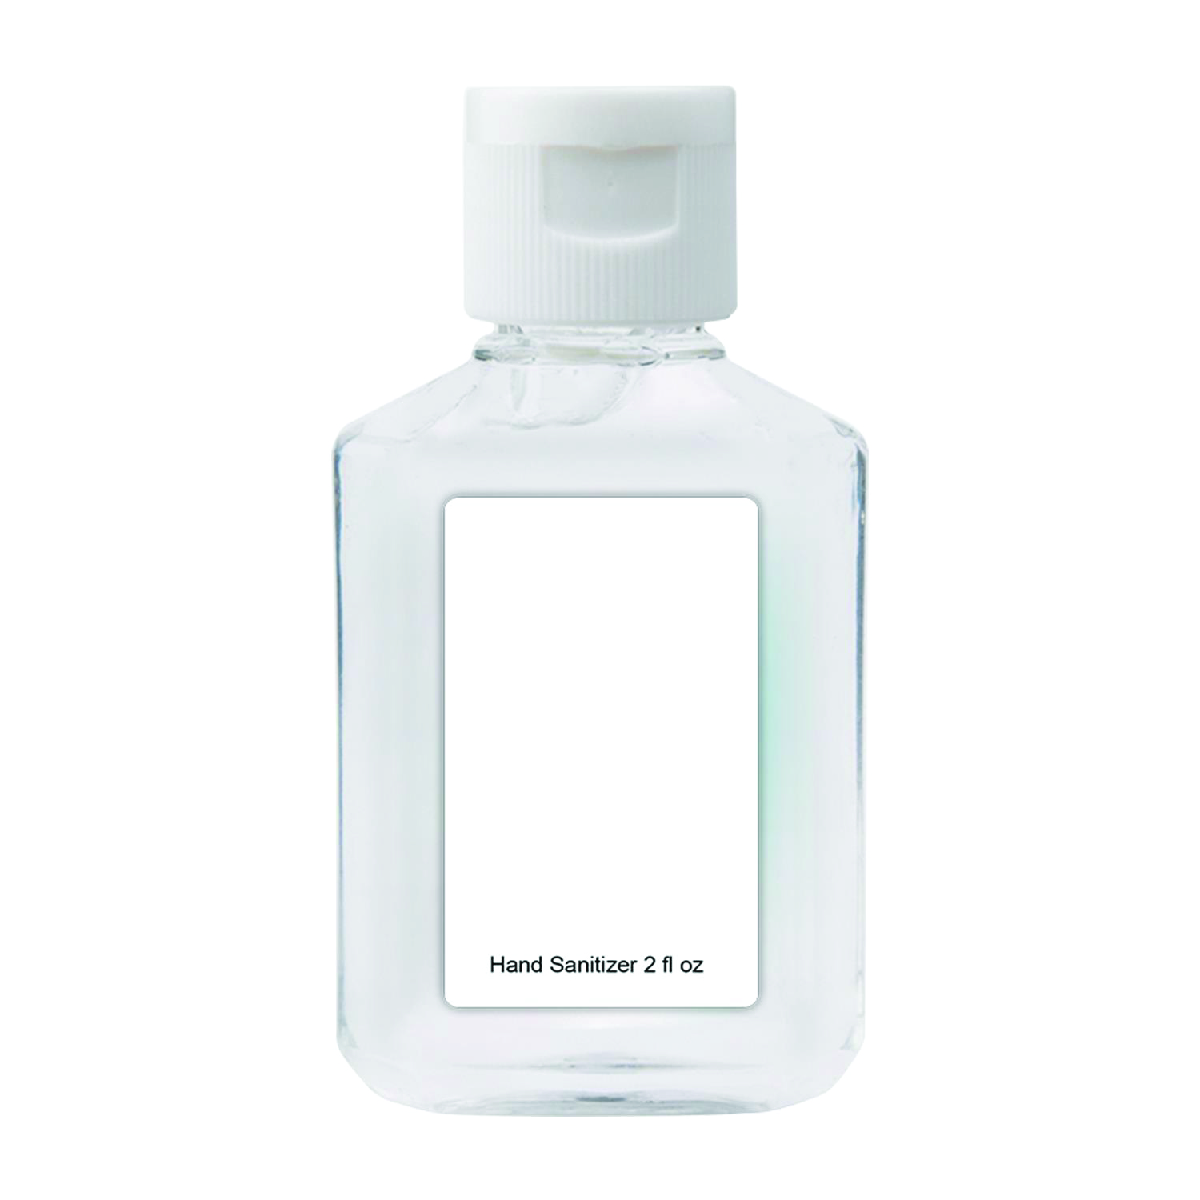 Clear Travel Hand Sanitizer 2 oz